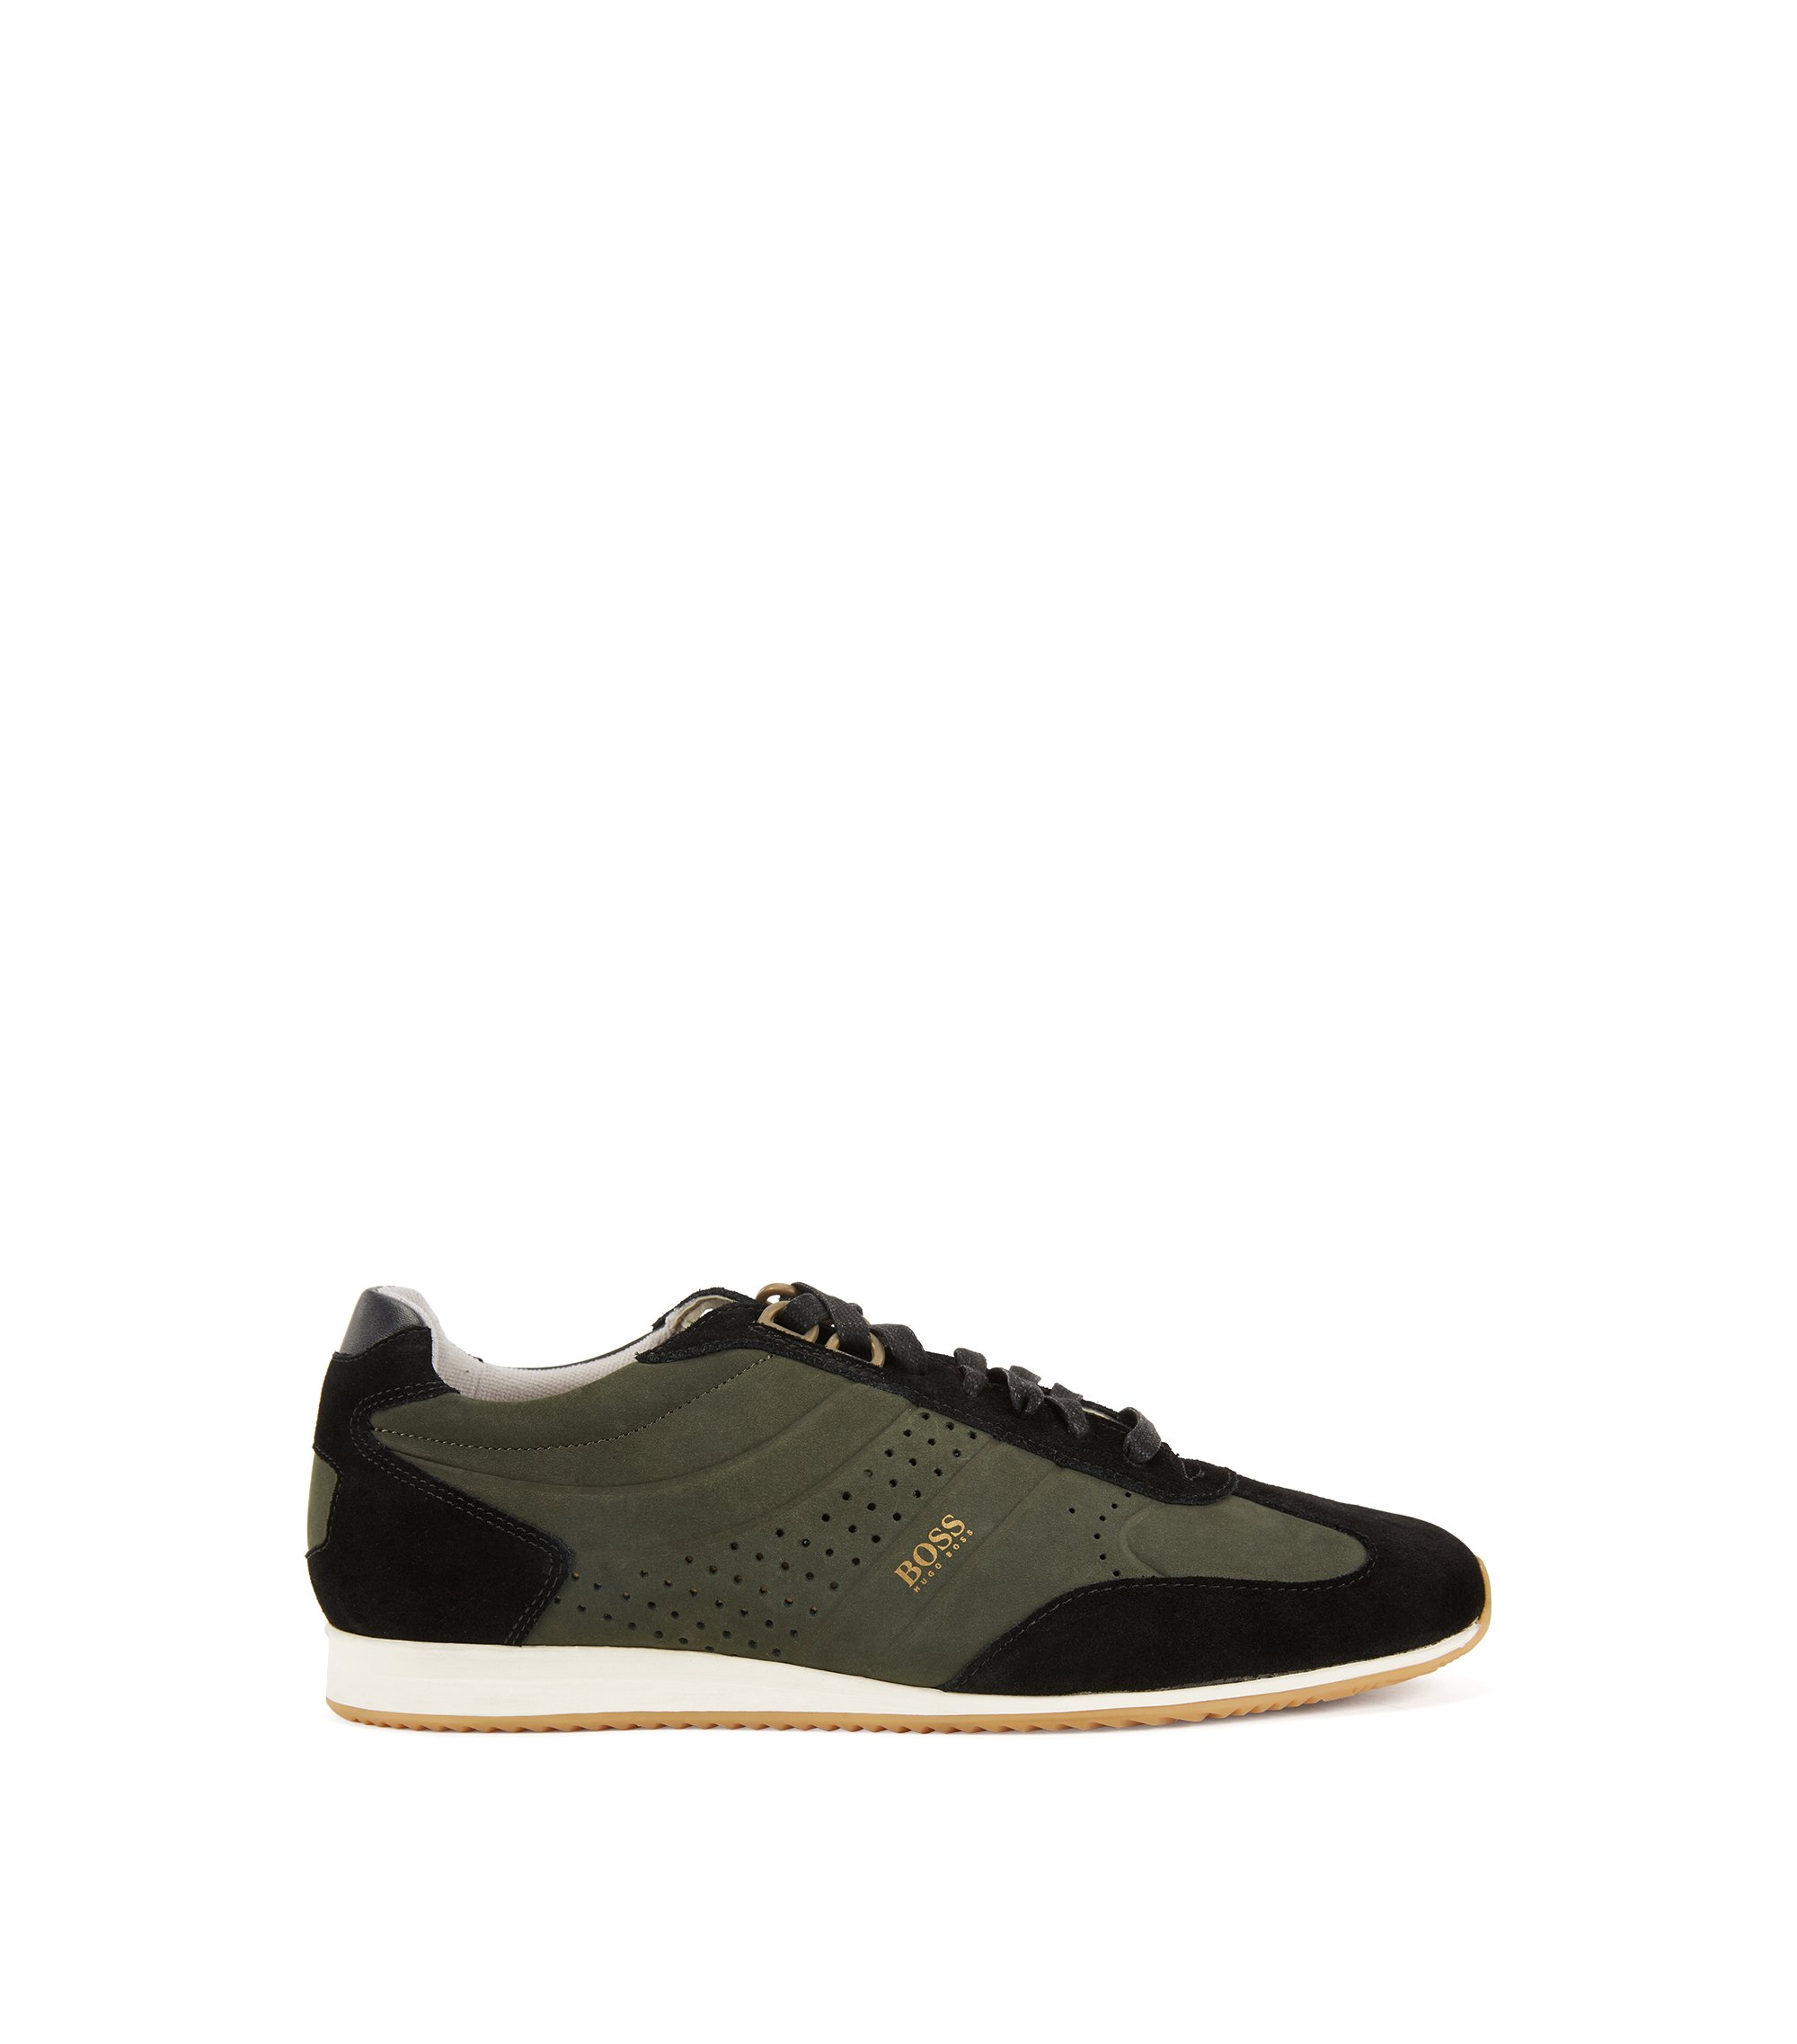 Sneakers low-top in pelle nabuk, Verde scuro